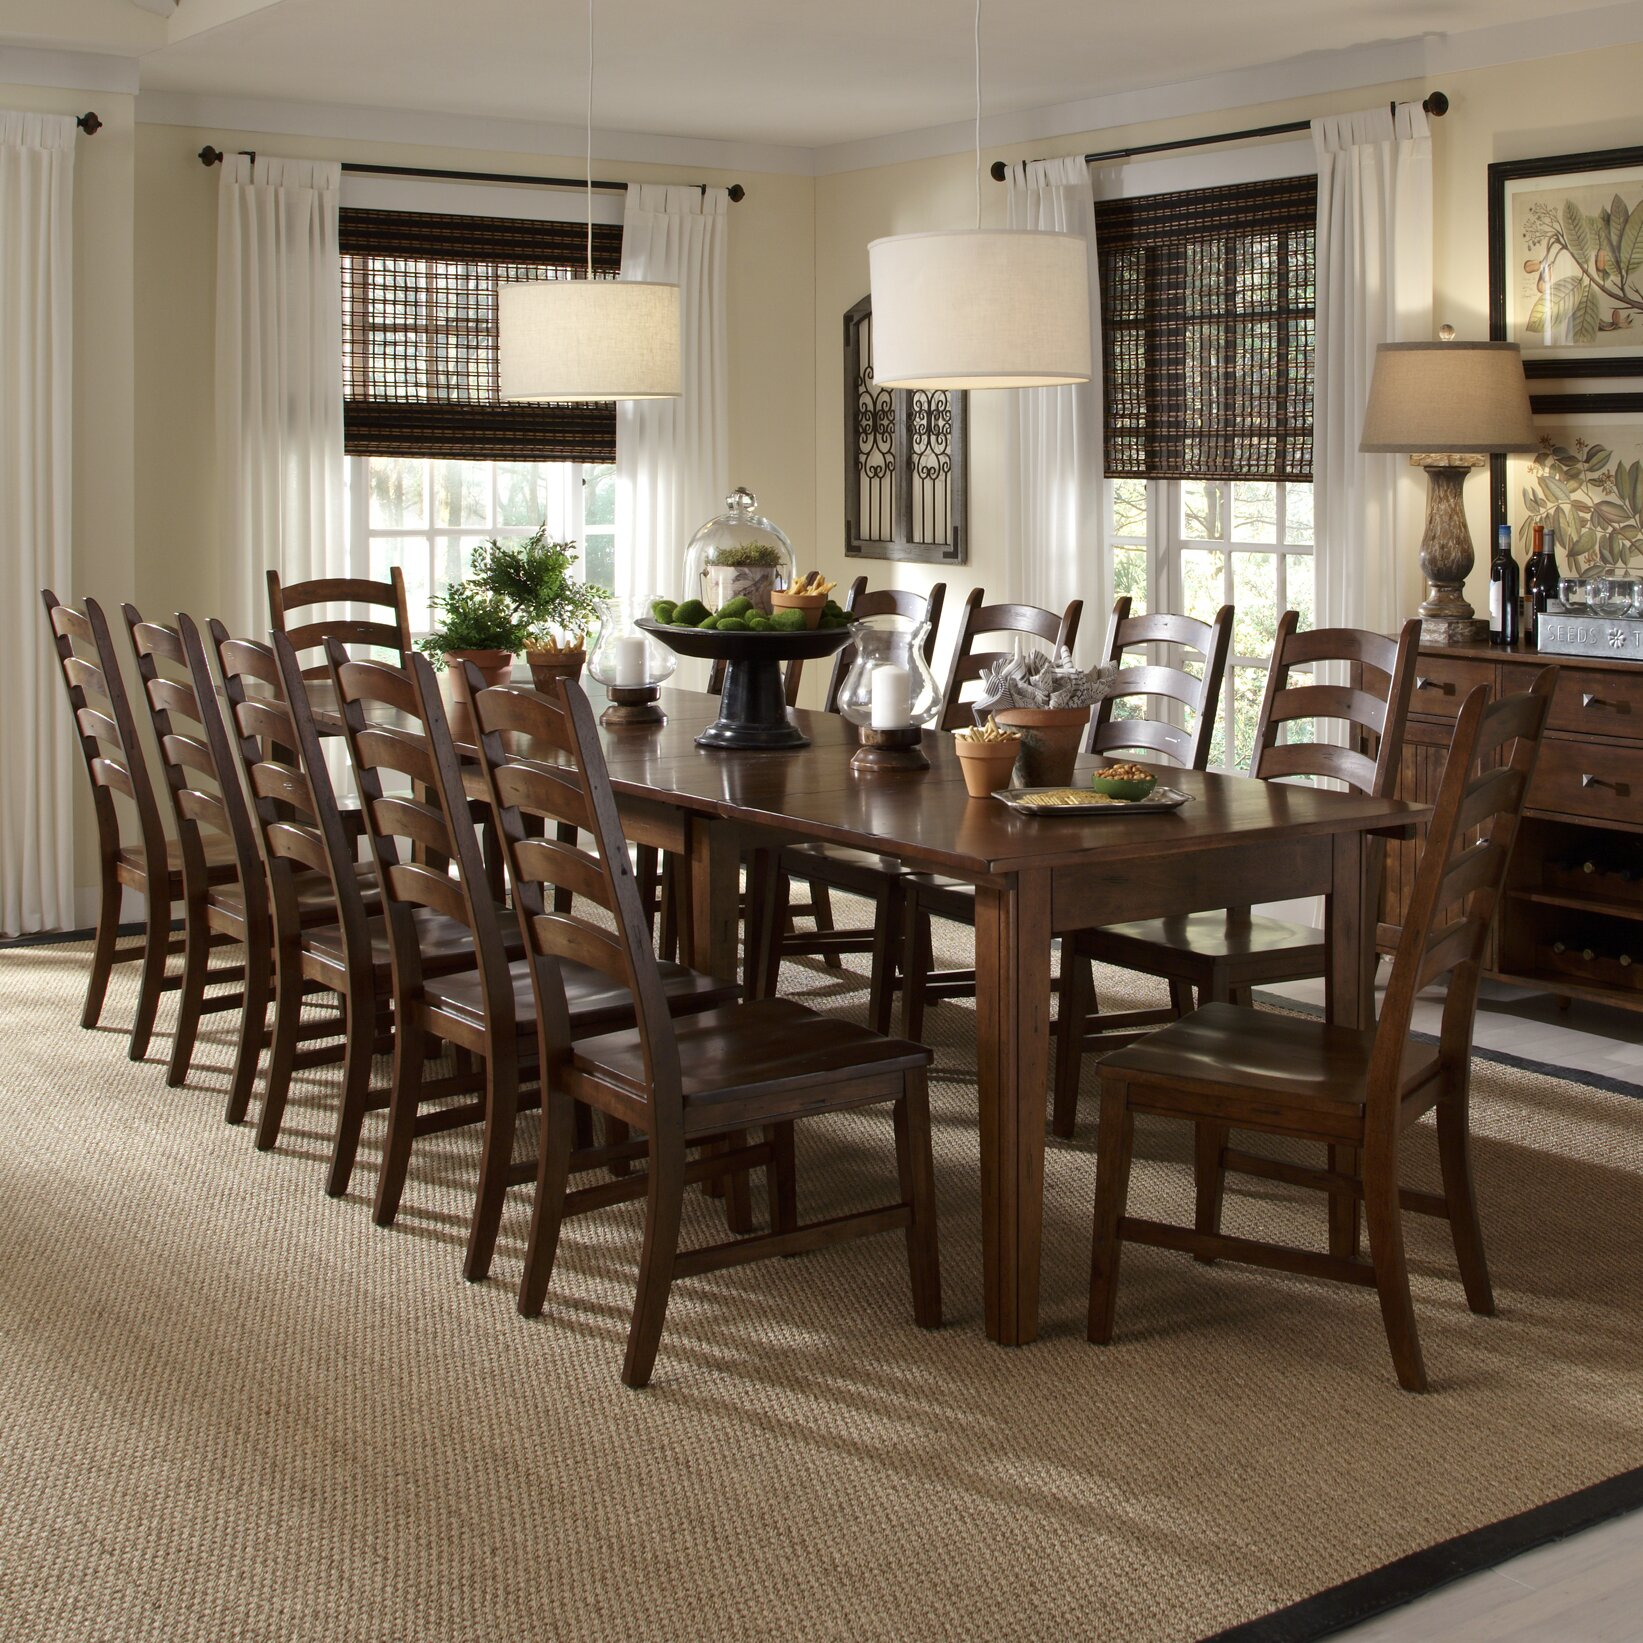 11 Piece Kitchen Dining Room Sets Youll Love Wayfair .